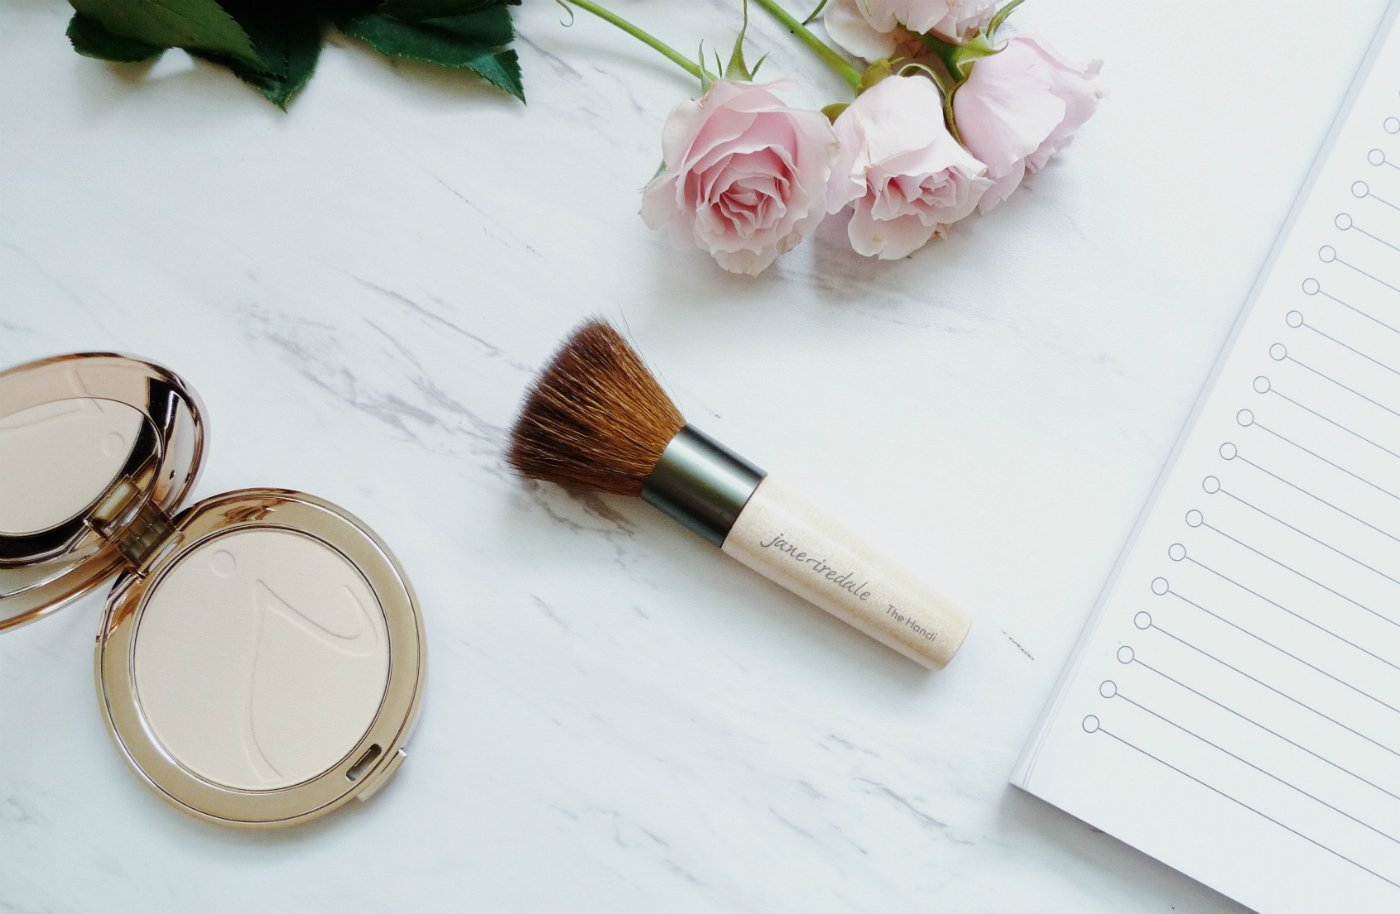 Green Beauty Essentials with Jane Iredale